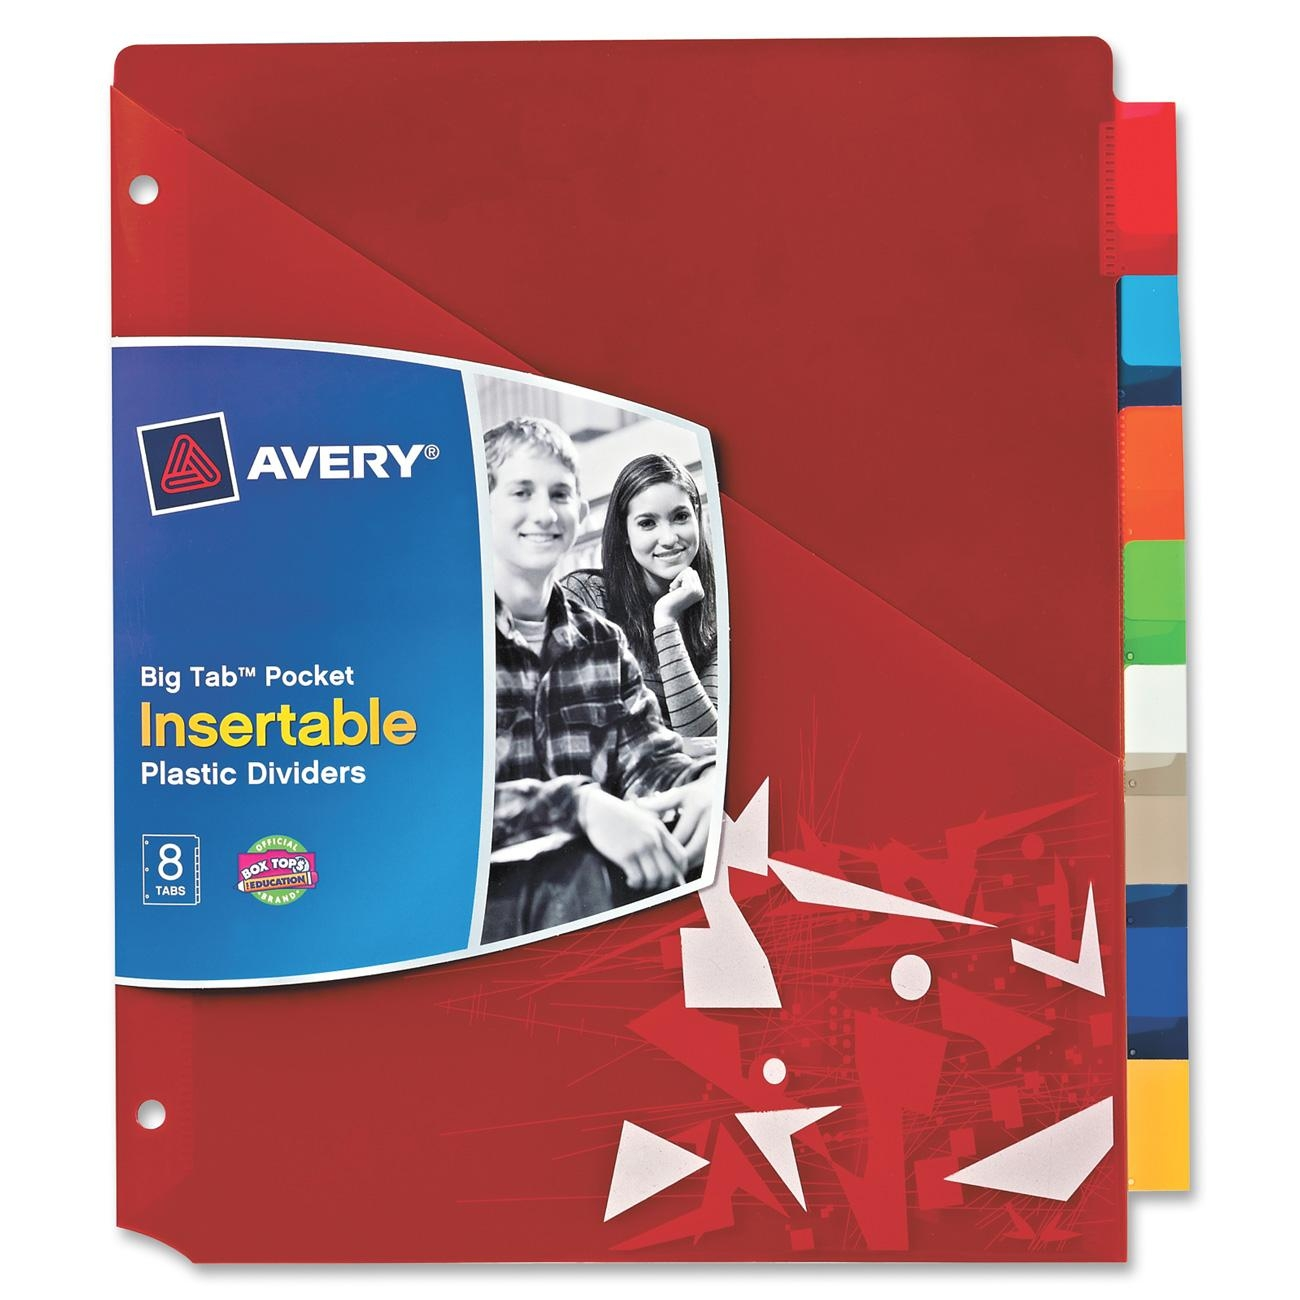 Avery Products Corporation 07717 Student Tuff Pocket Insertable Plastic Dividers Asst Asst